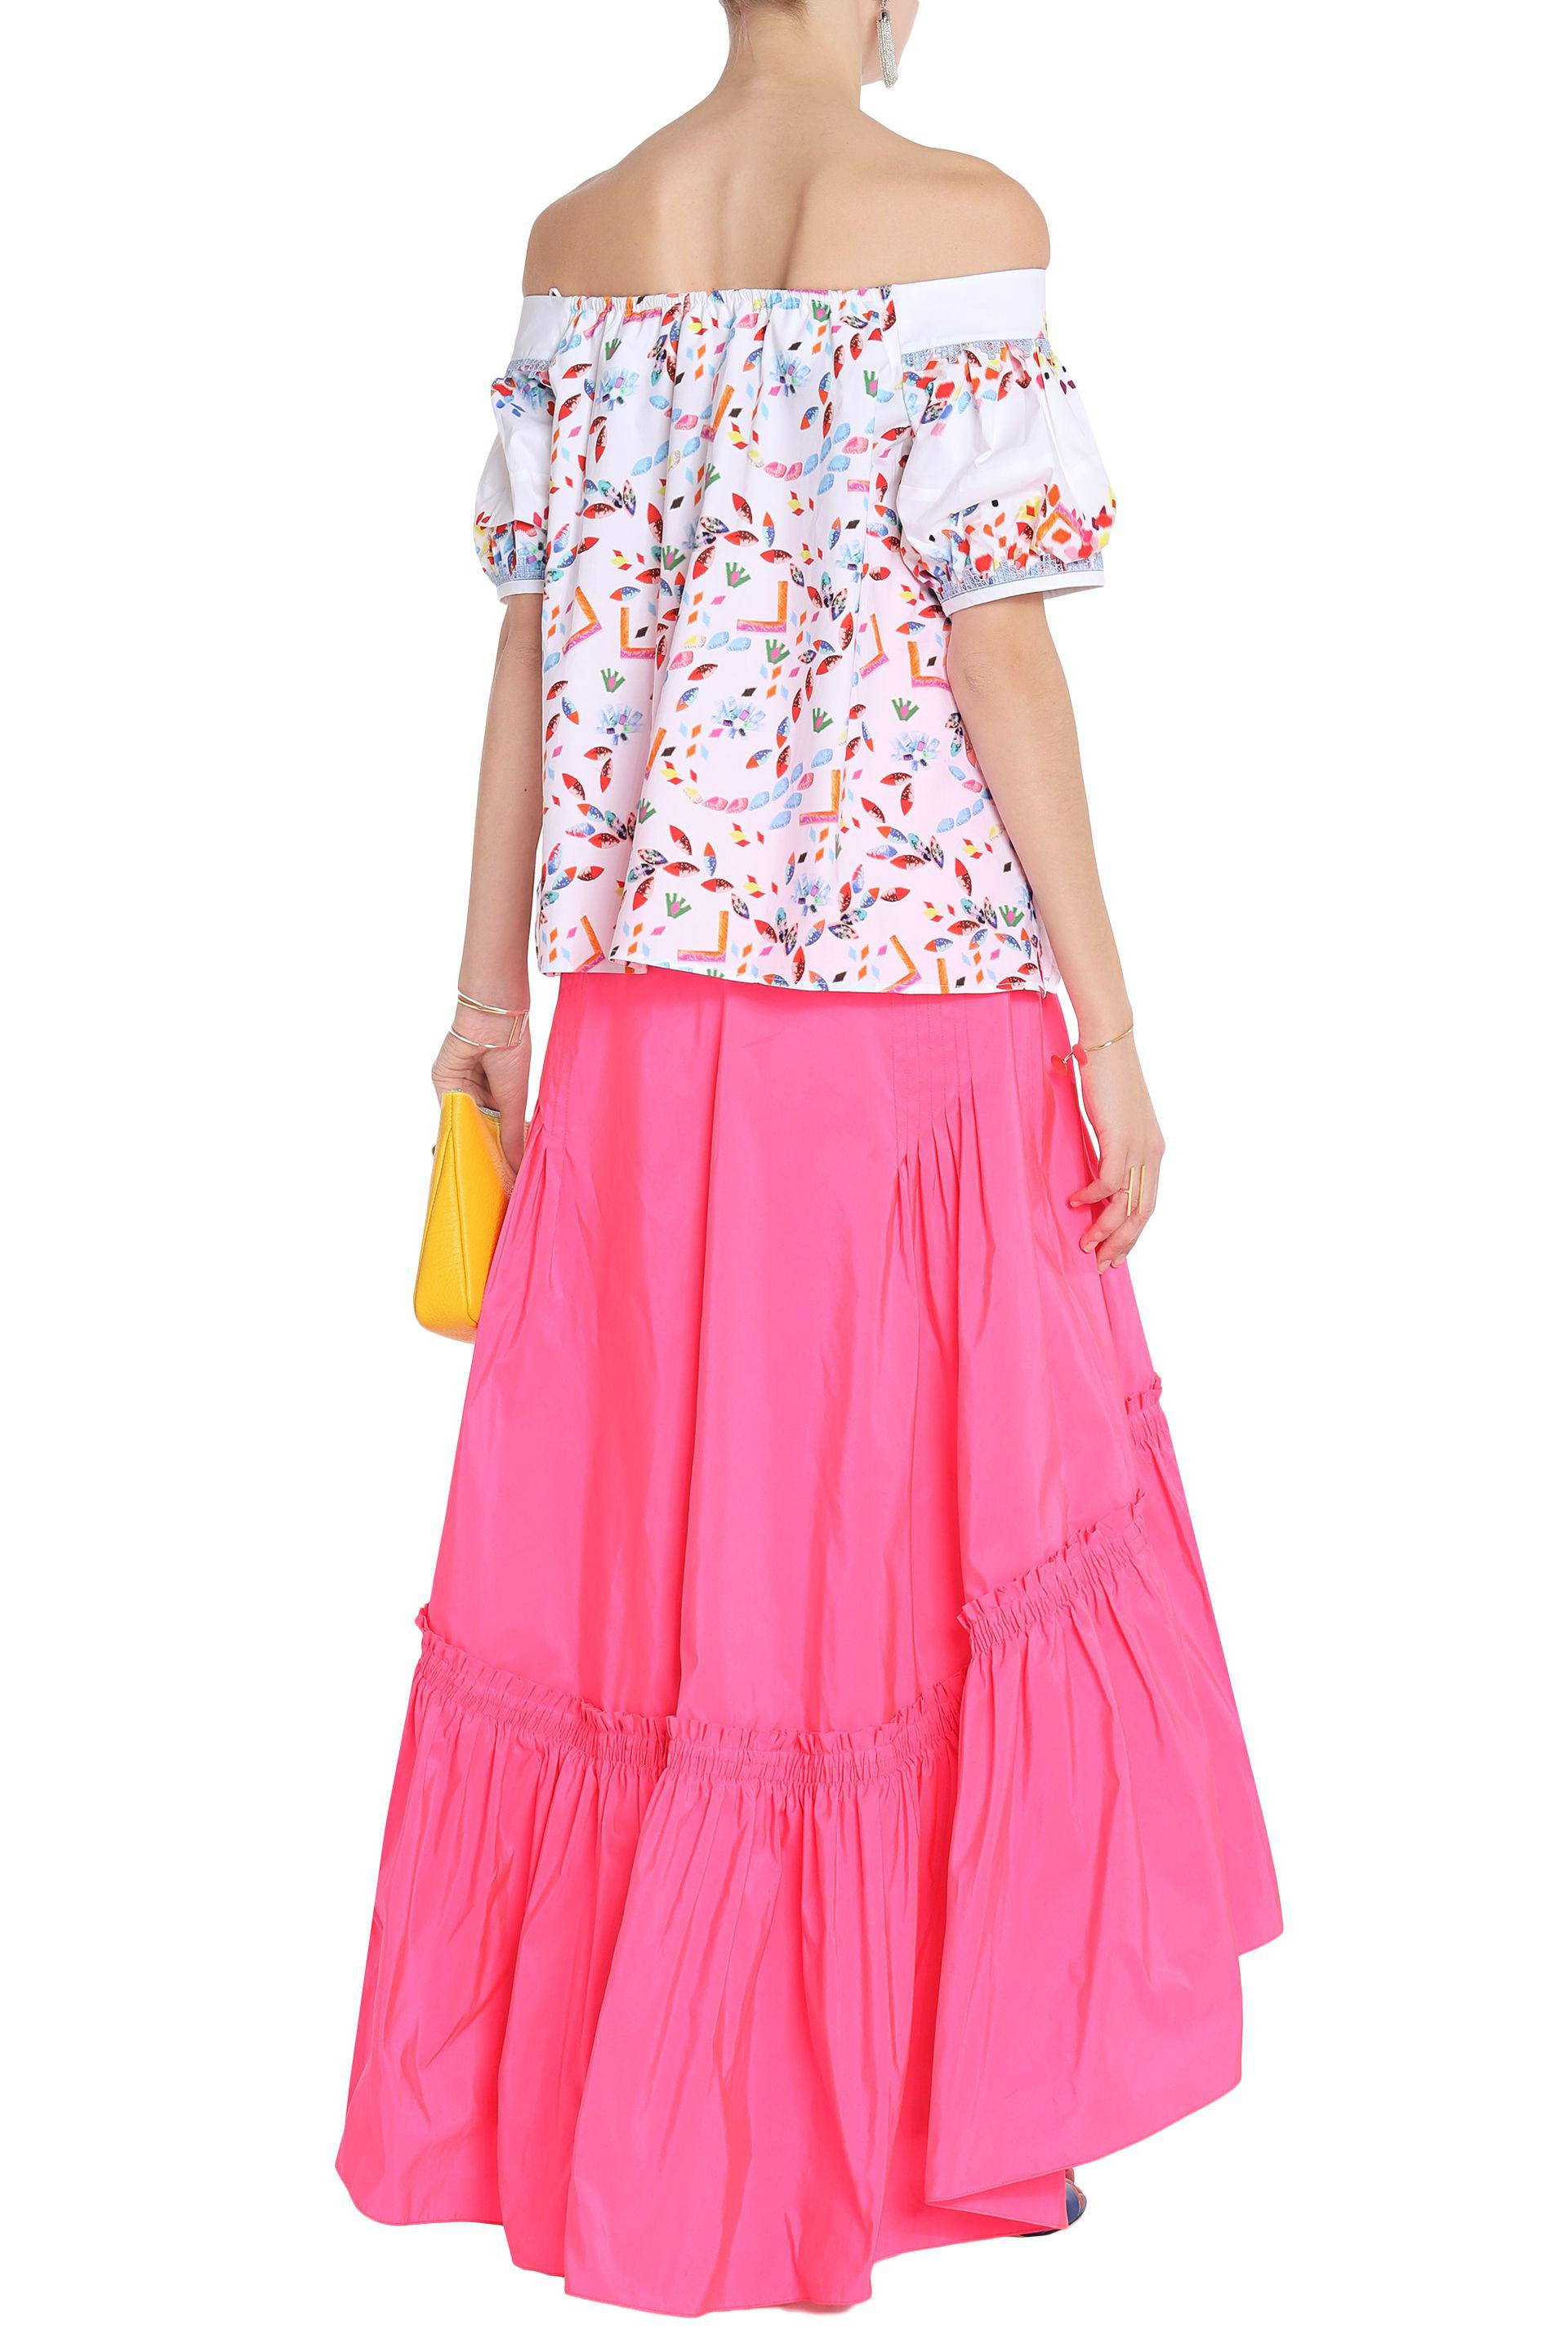 Peter Pilotto Woman Gathered Satin Maxi Skirt Bright Pink Size 12 Peter Pilotto Discount The Cheapest Low Price Fee Shipping Cheap Price GX6WHMY1M